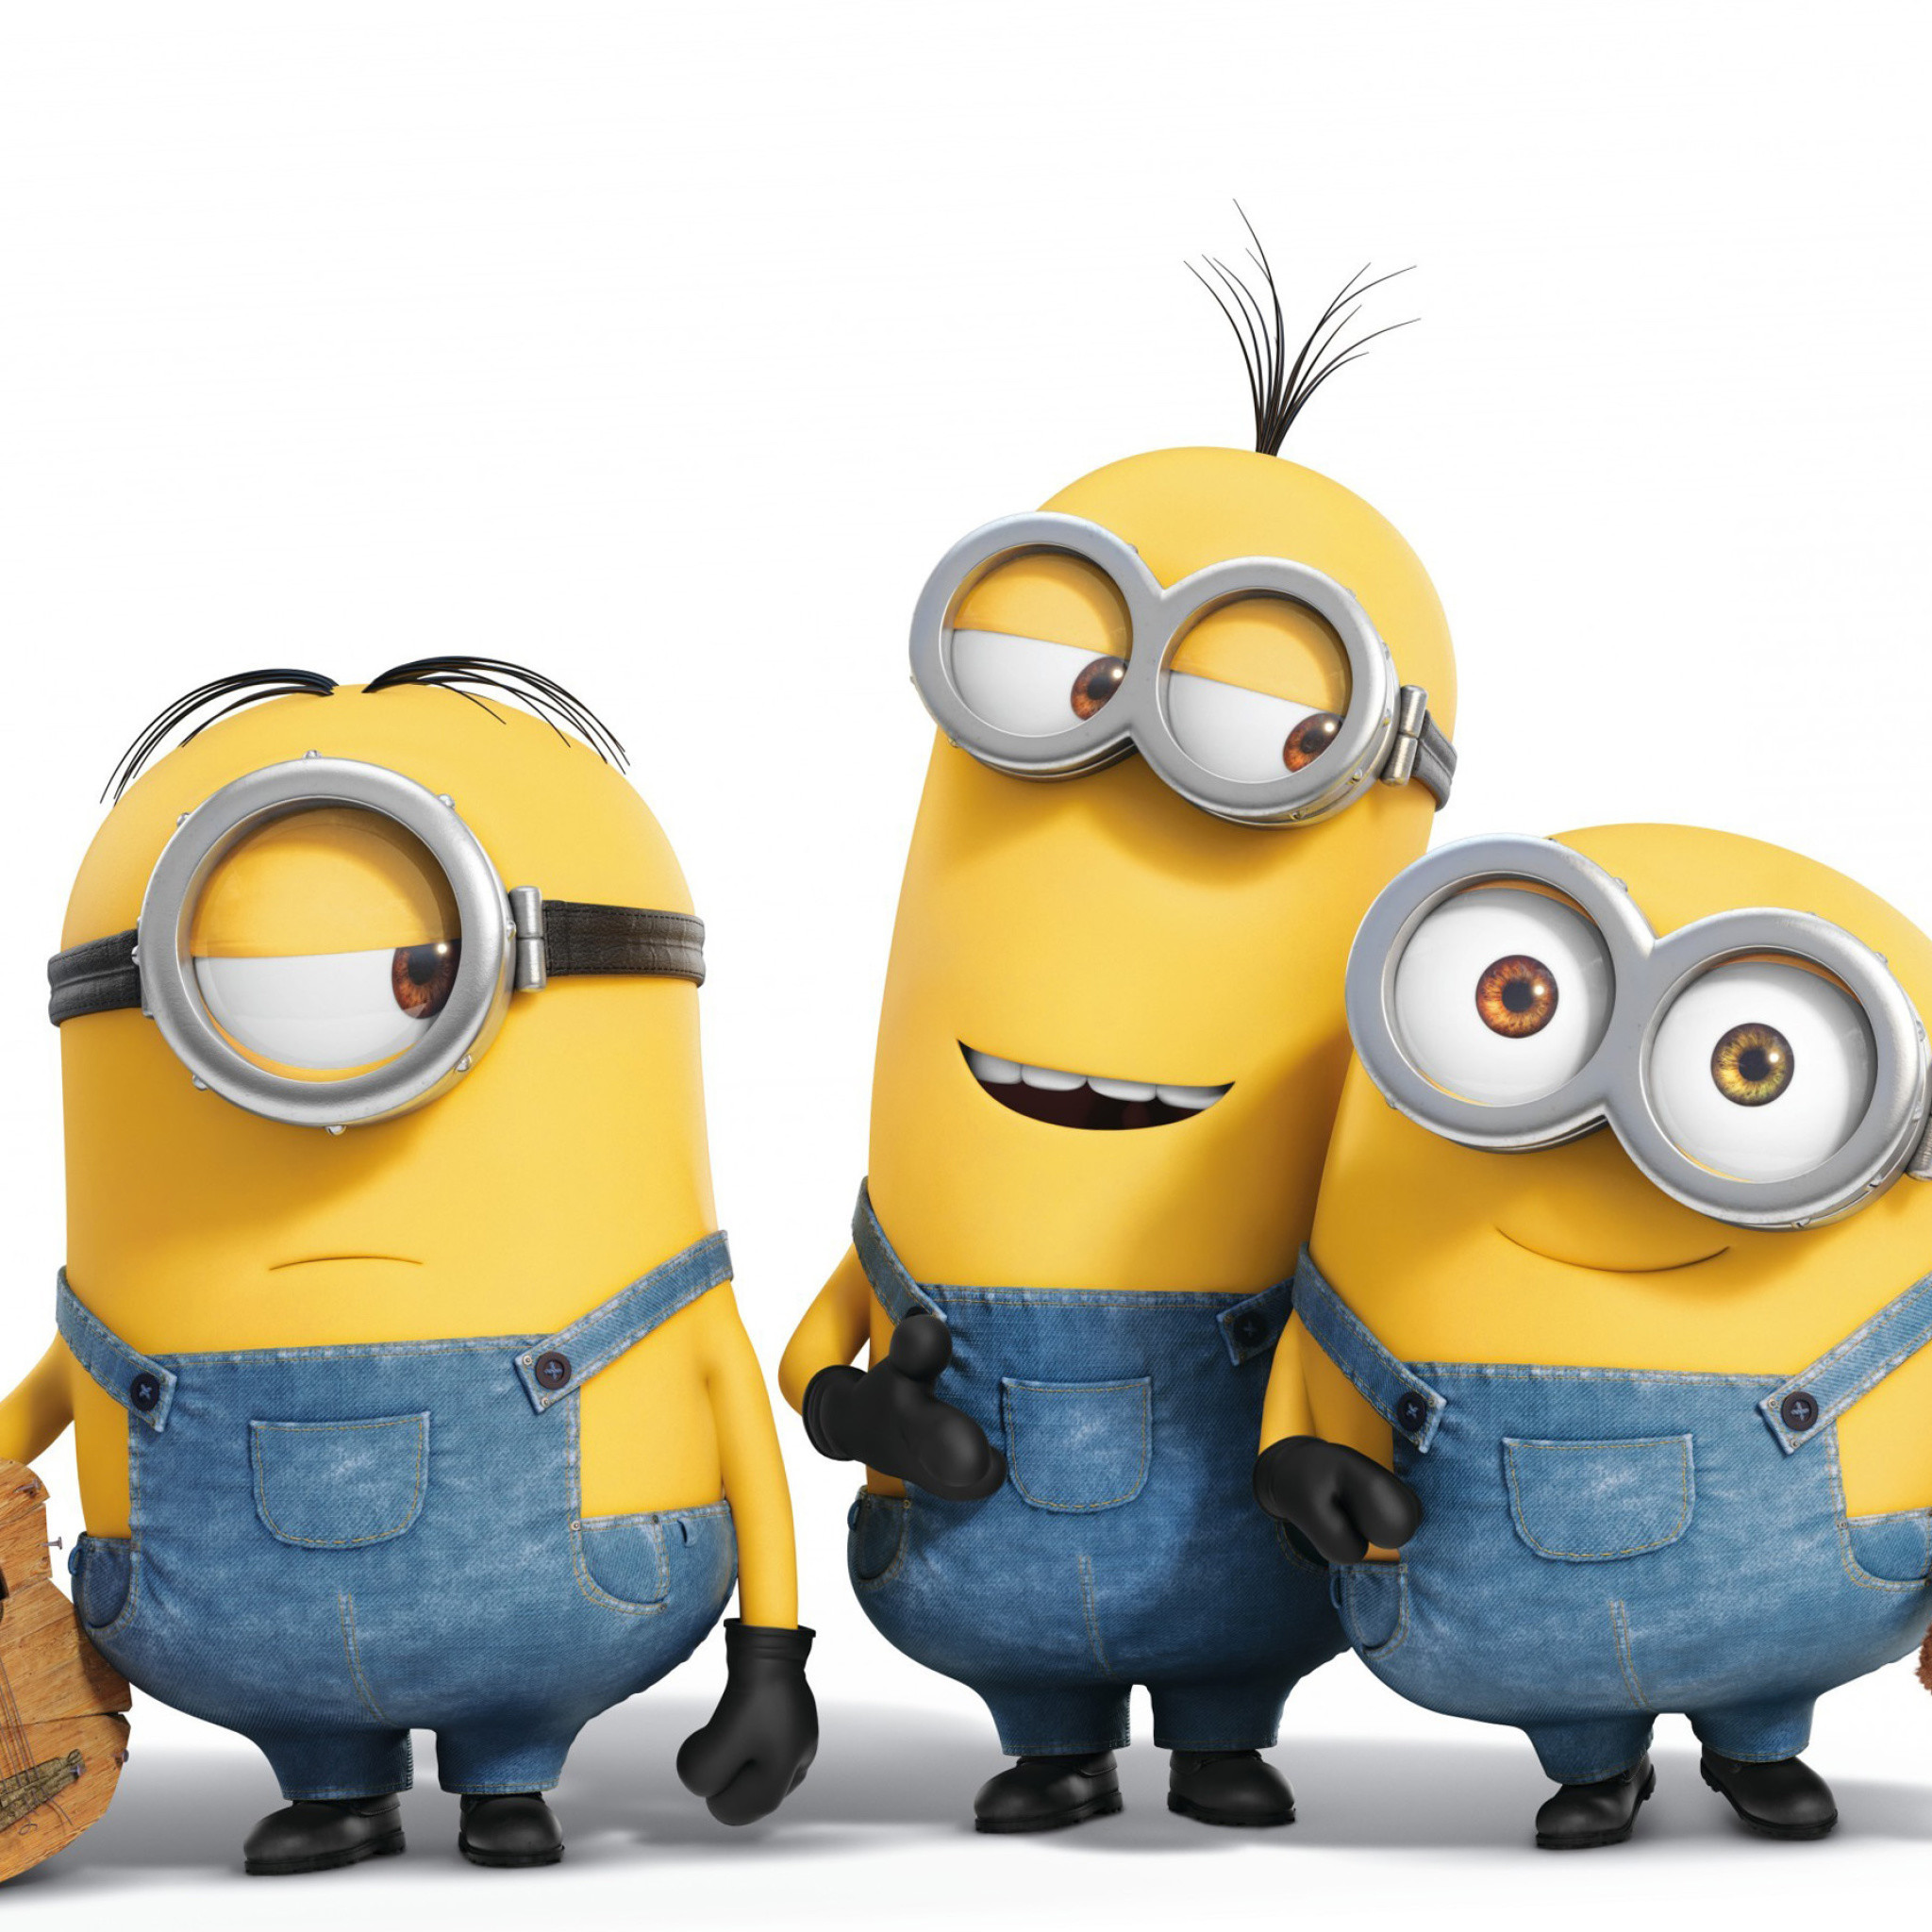 Live Minions Wallpaper (70+ images)